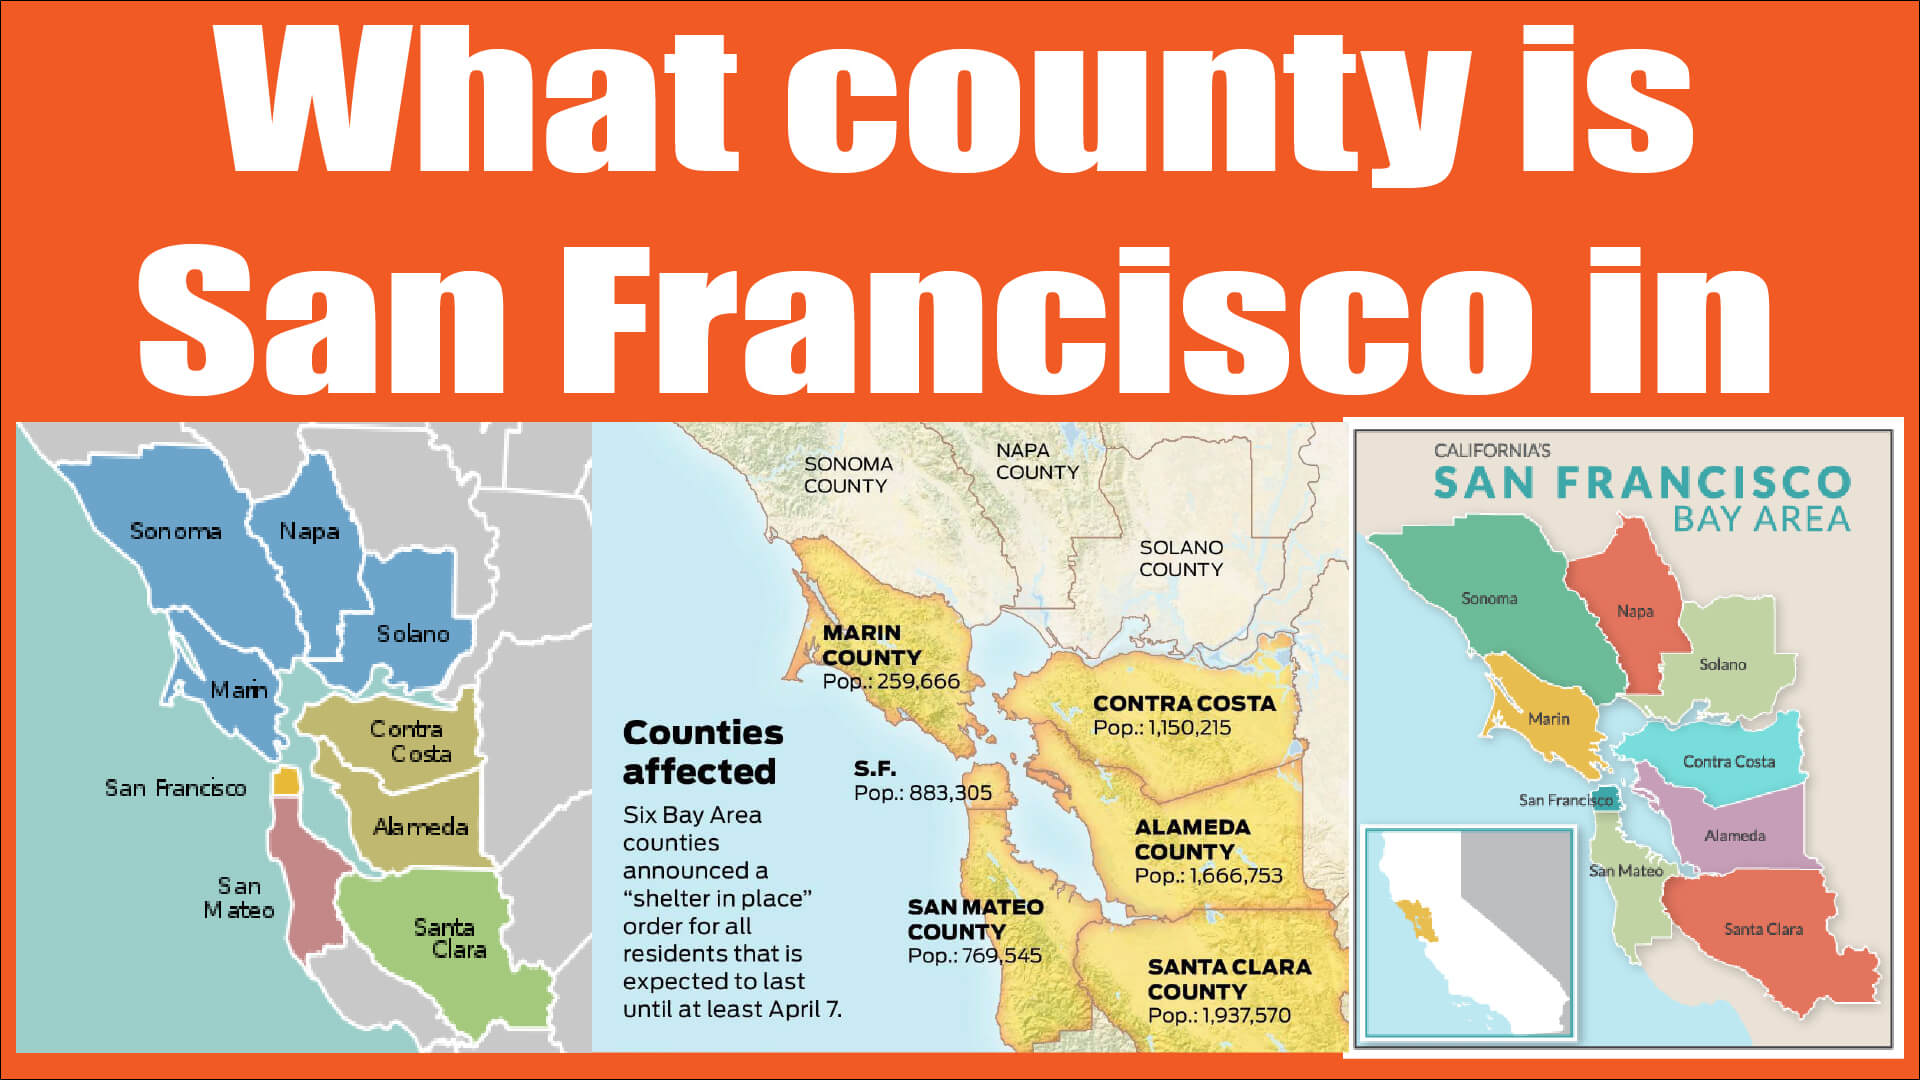 What county is San Francisco in